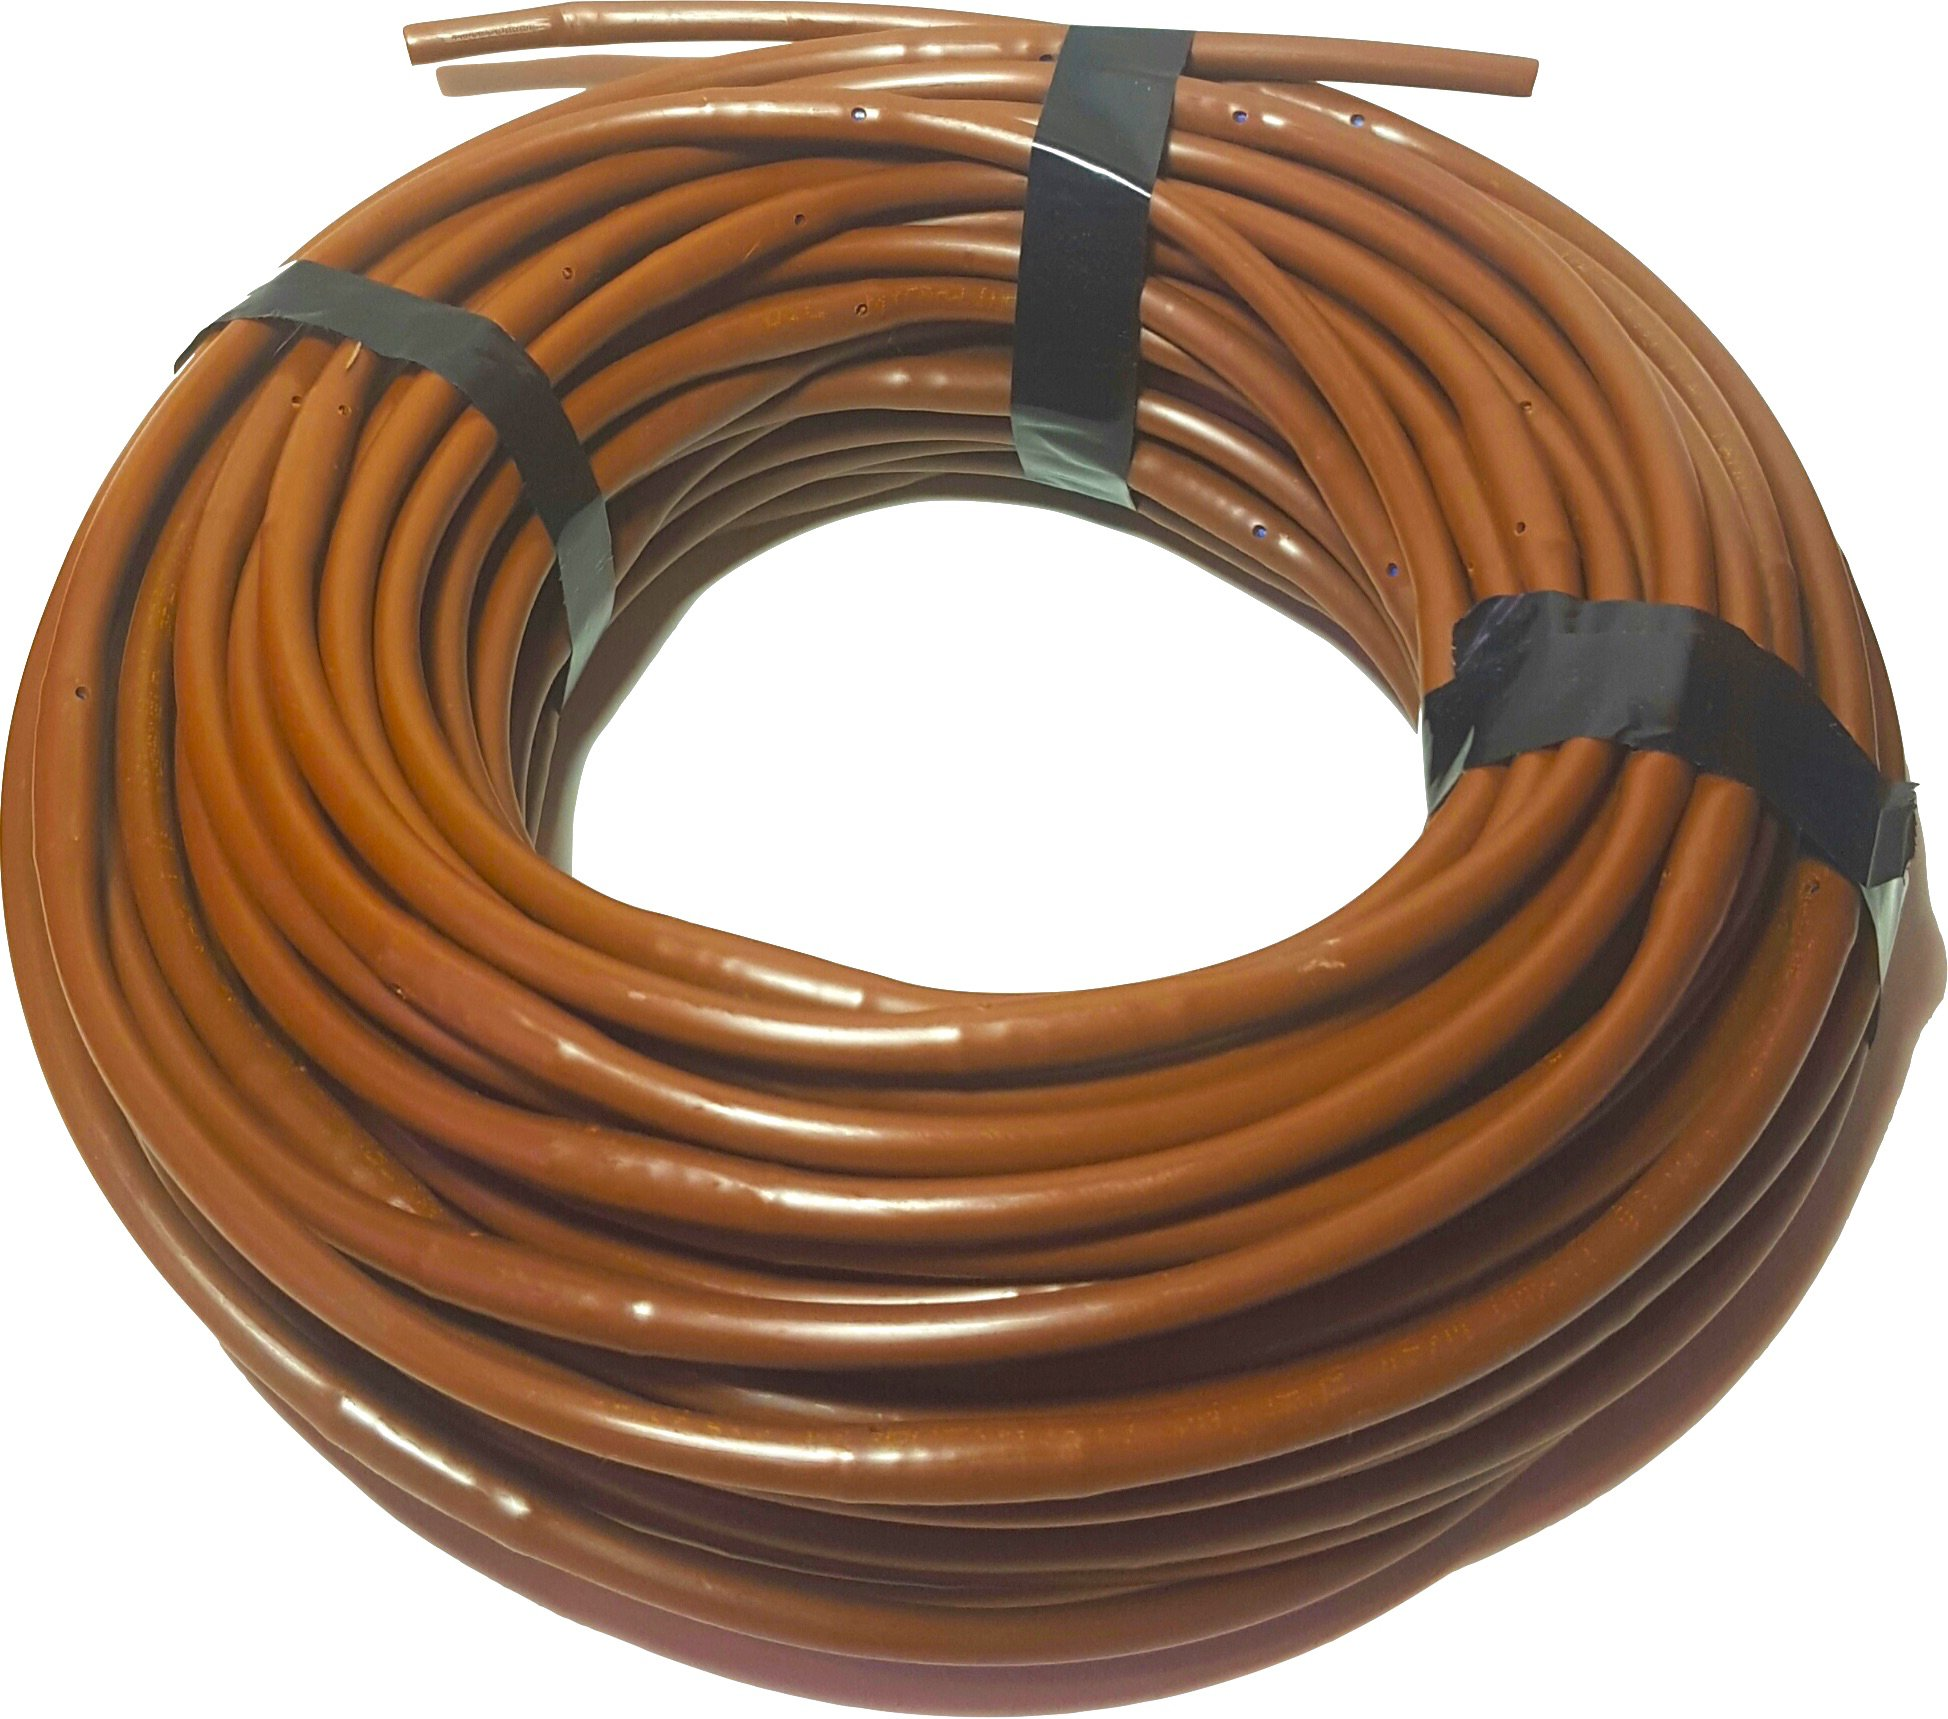 Dig 1/4-Inch x 100-Feet Irrigation/Hydroponics Dripline with 9-Inch Emitter Spacing (Brown)